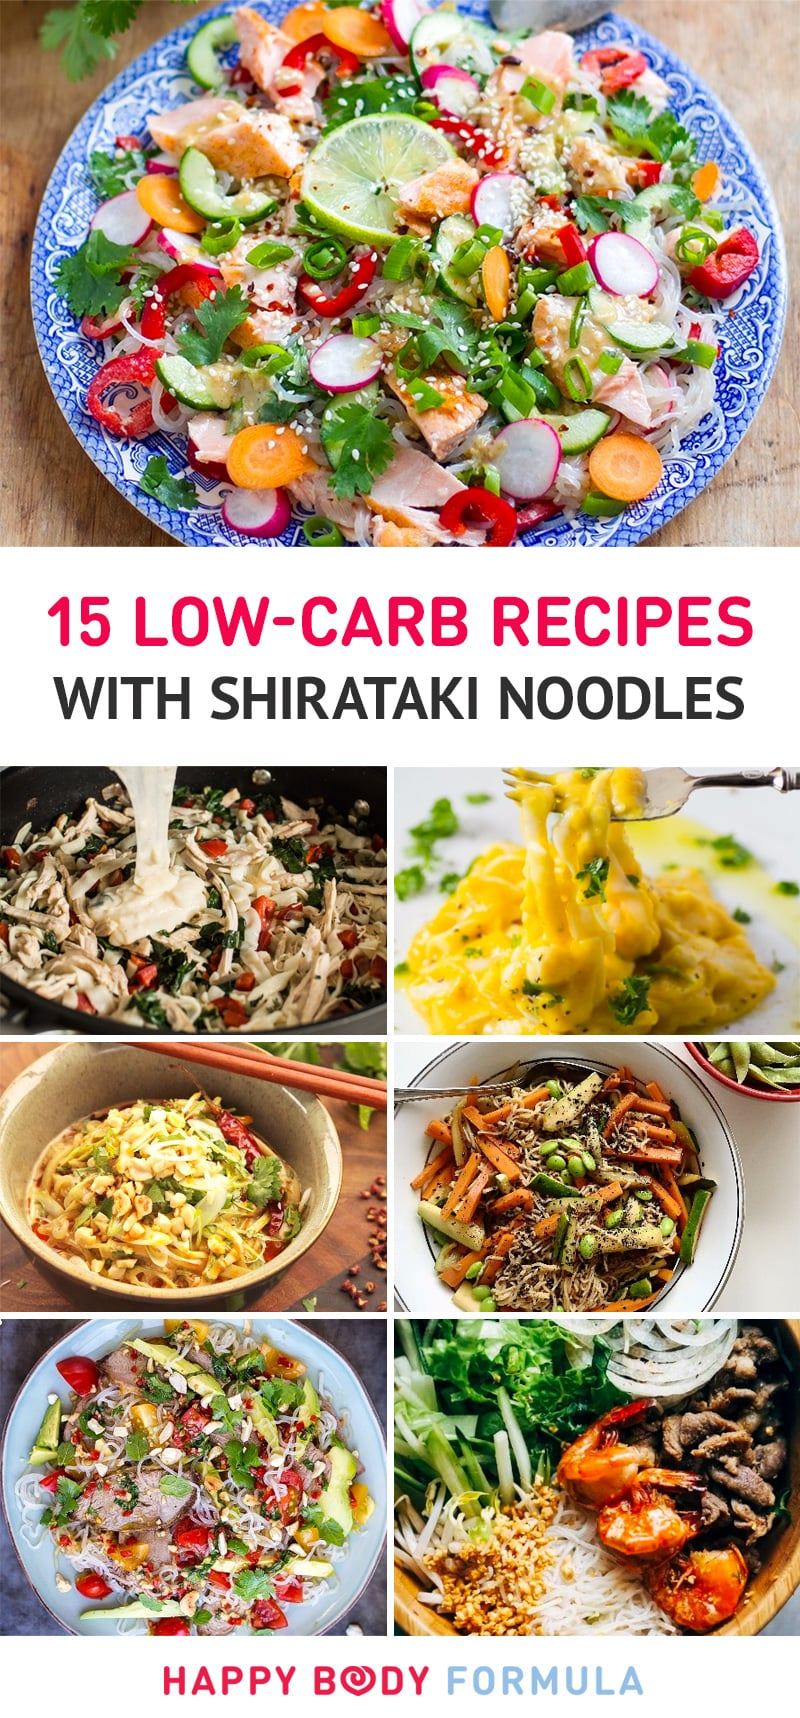 15 Delicious & Low-Carb Shirataki Noodles Recipes